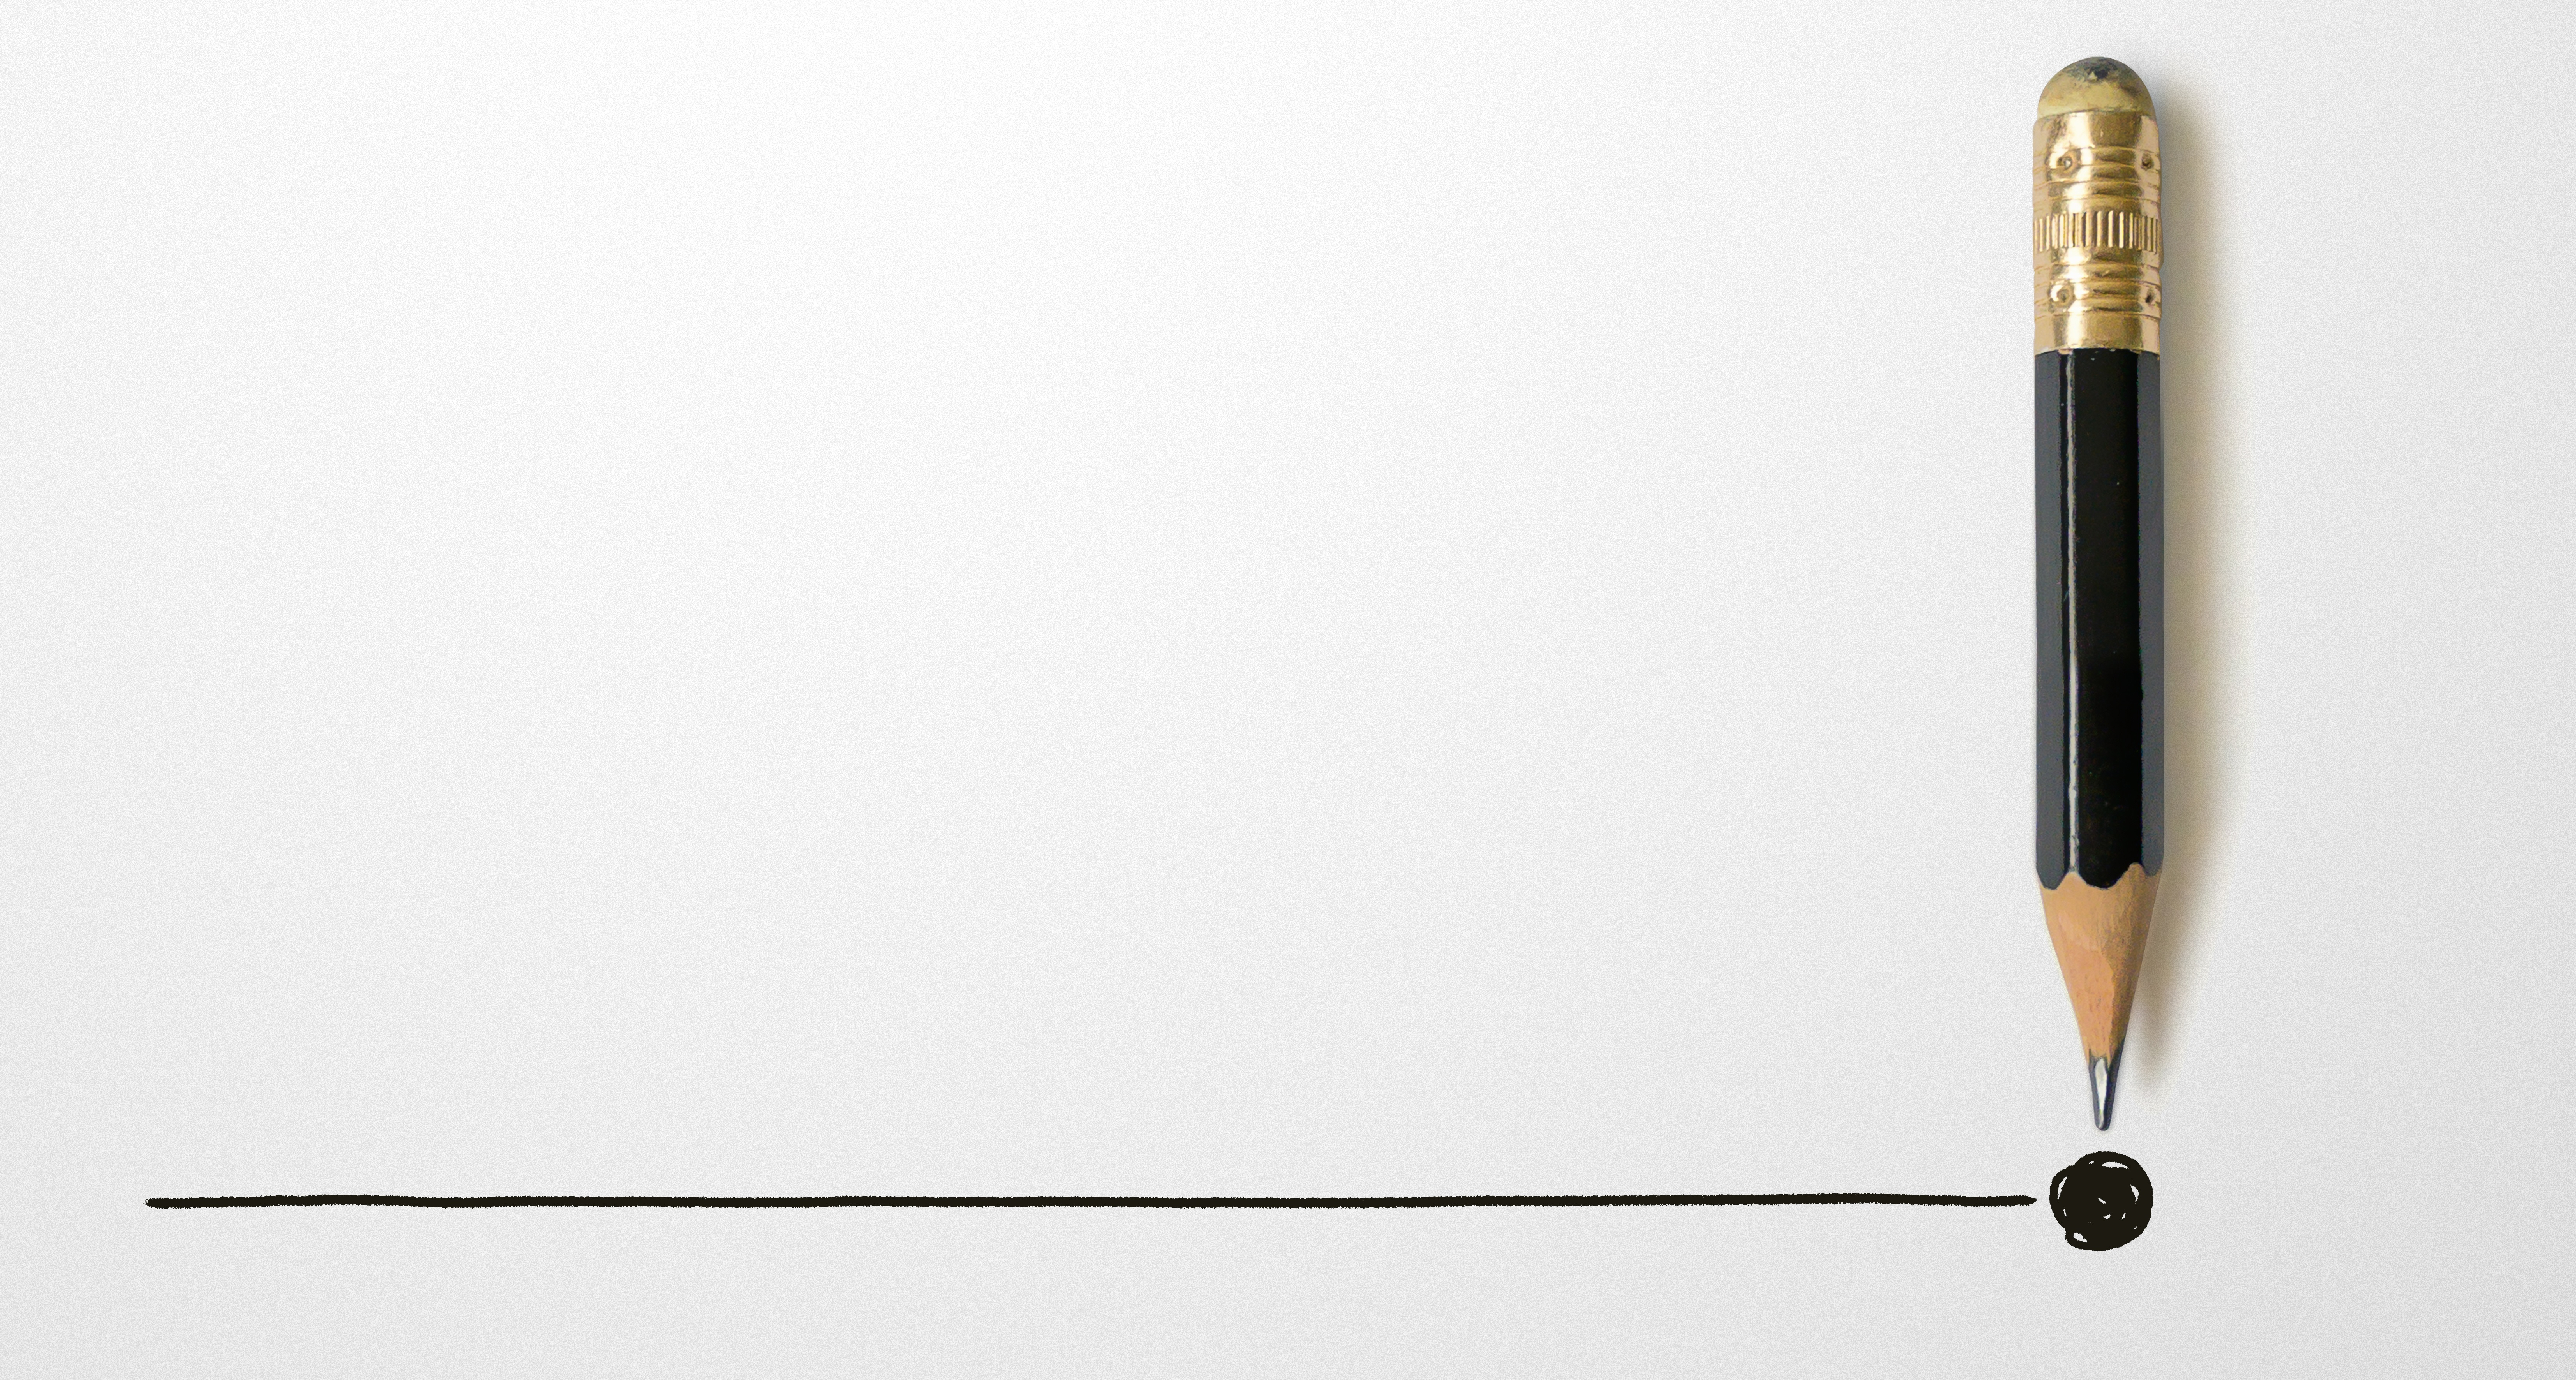 A pencil-drawn line is punctuated with a period.